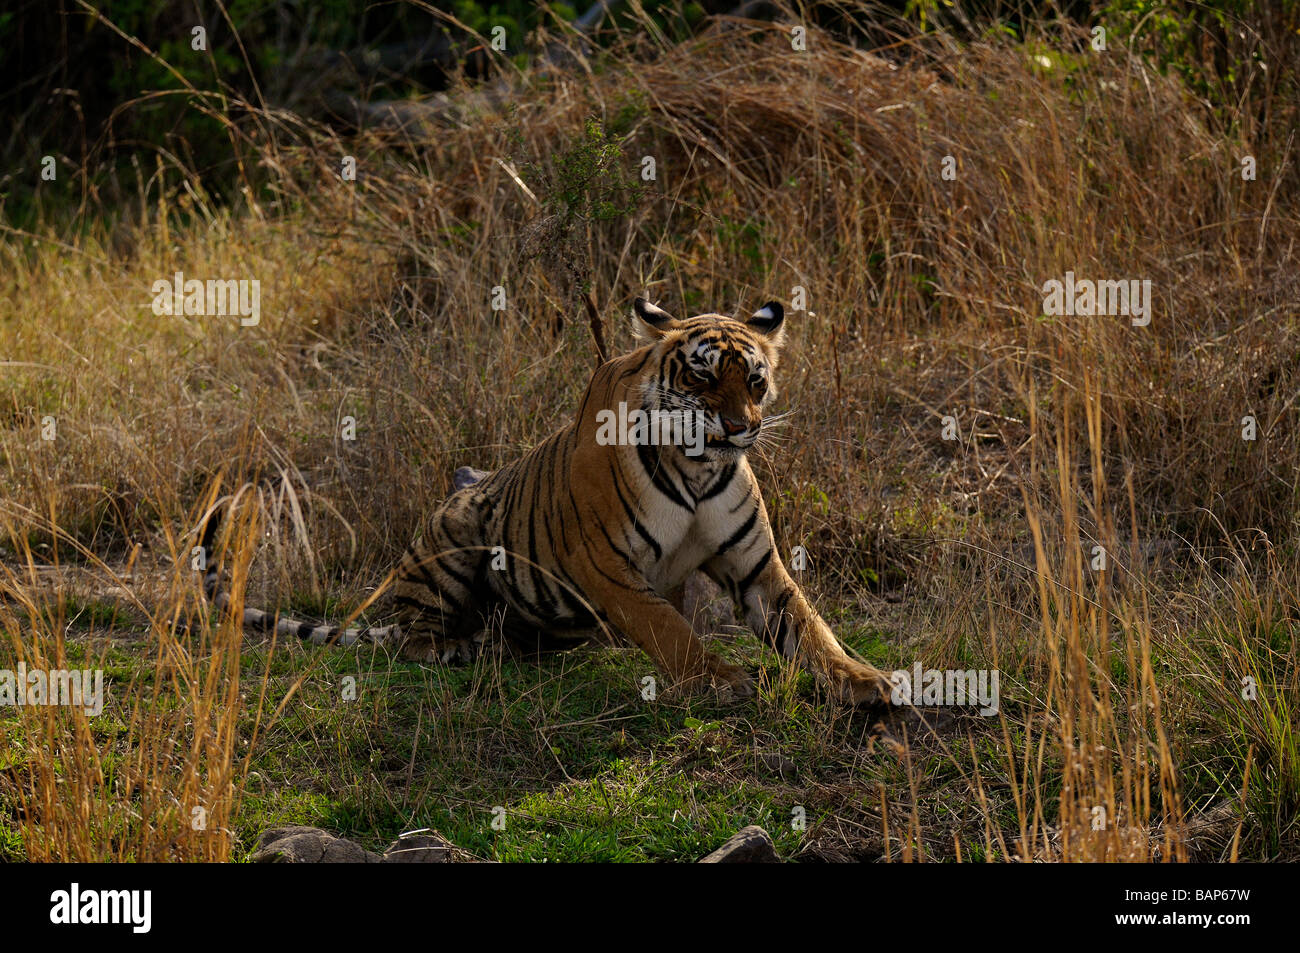 Wild Tiger in grass in the dry forests of Ranthambhore national park - Stock Image